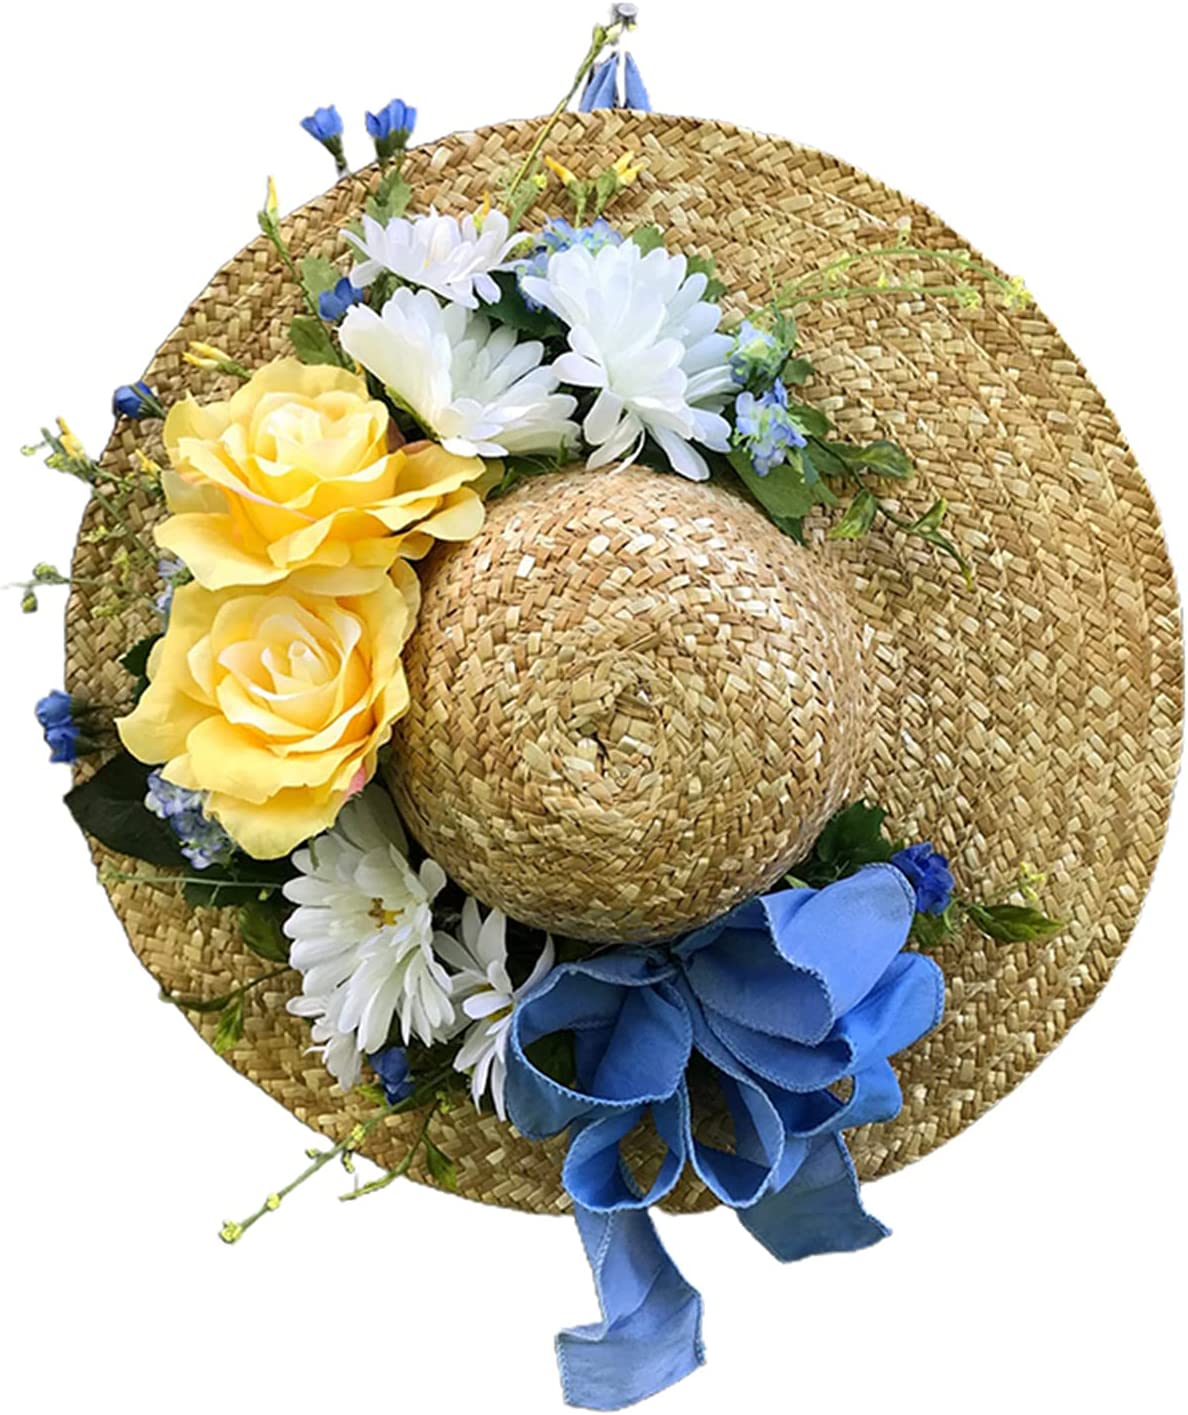 Xiaosong - Straw Hat San Jose Mall Wreath Front Artificial Special price Flower Hanging Door